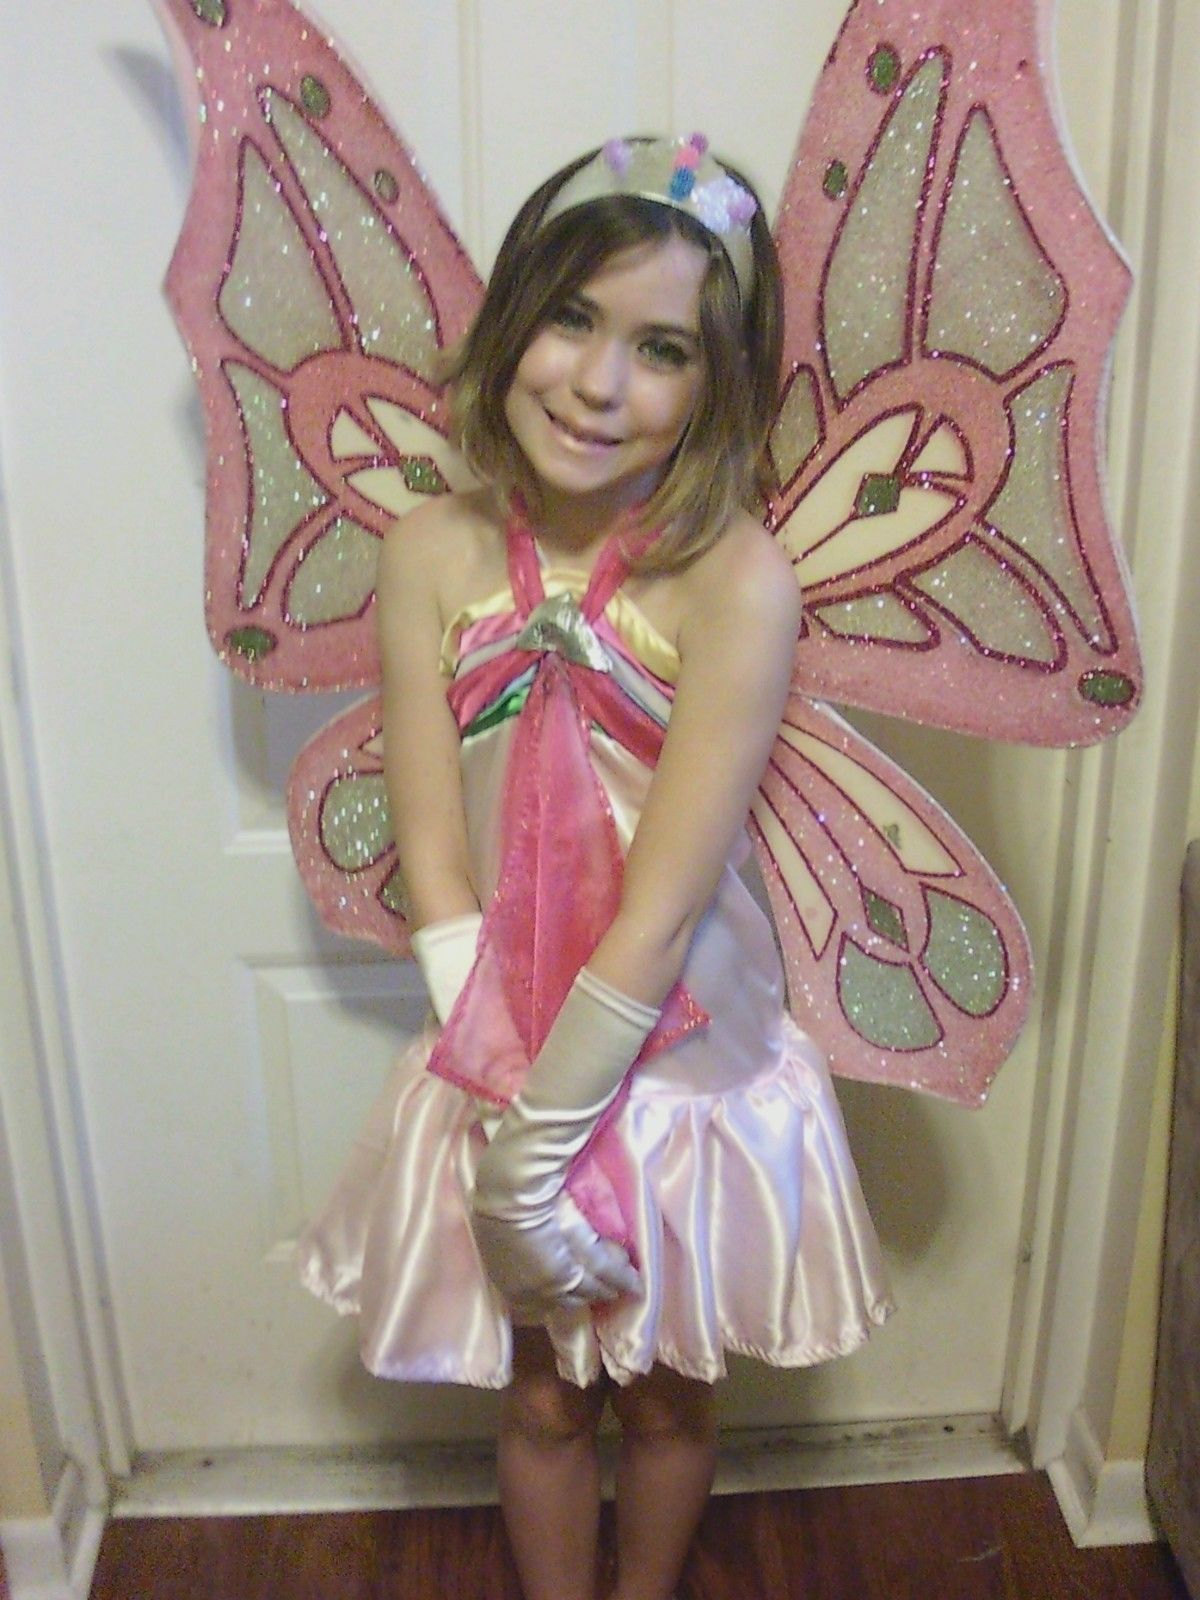 Winx style flora enchantix dress for year old costume cosplay